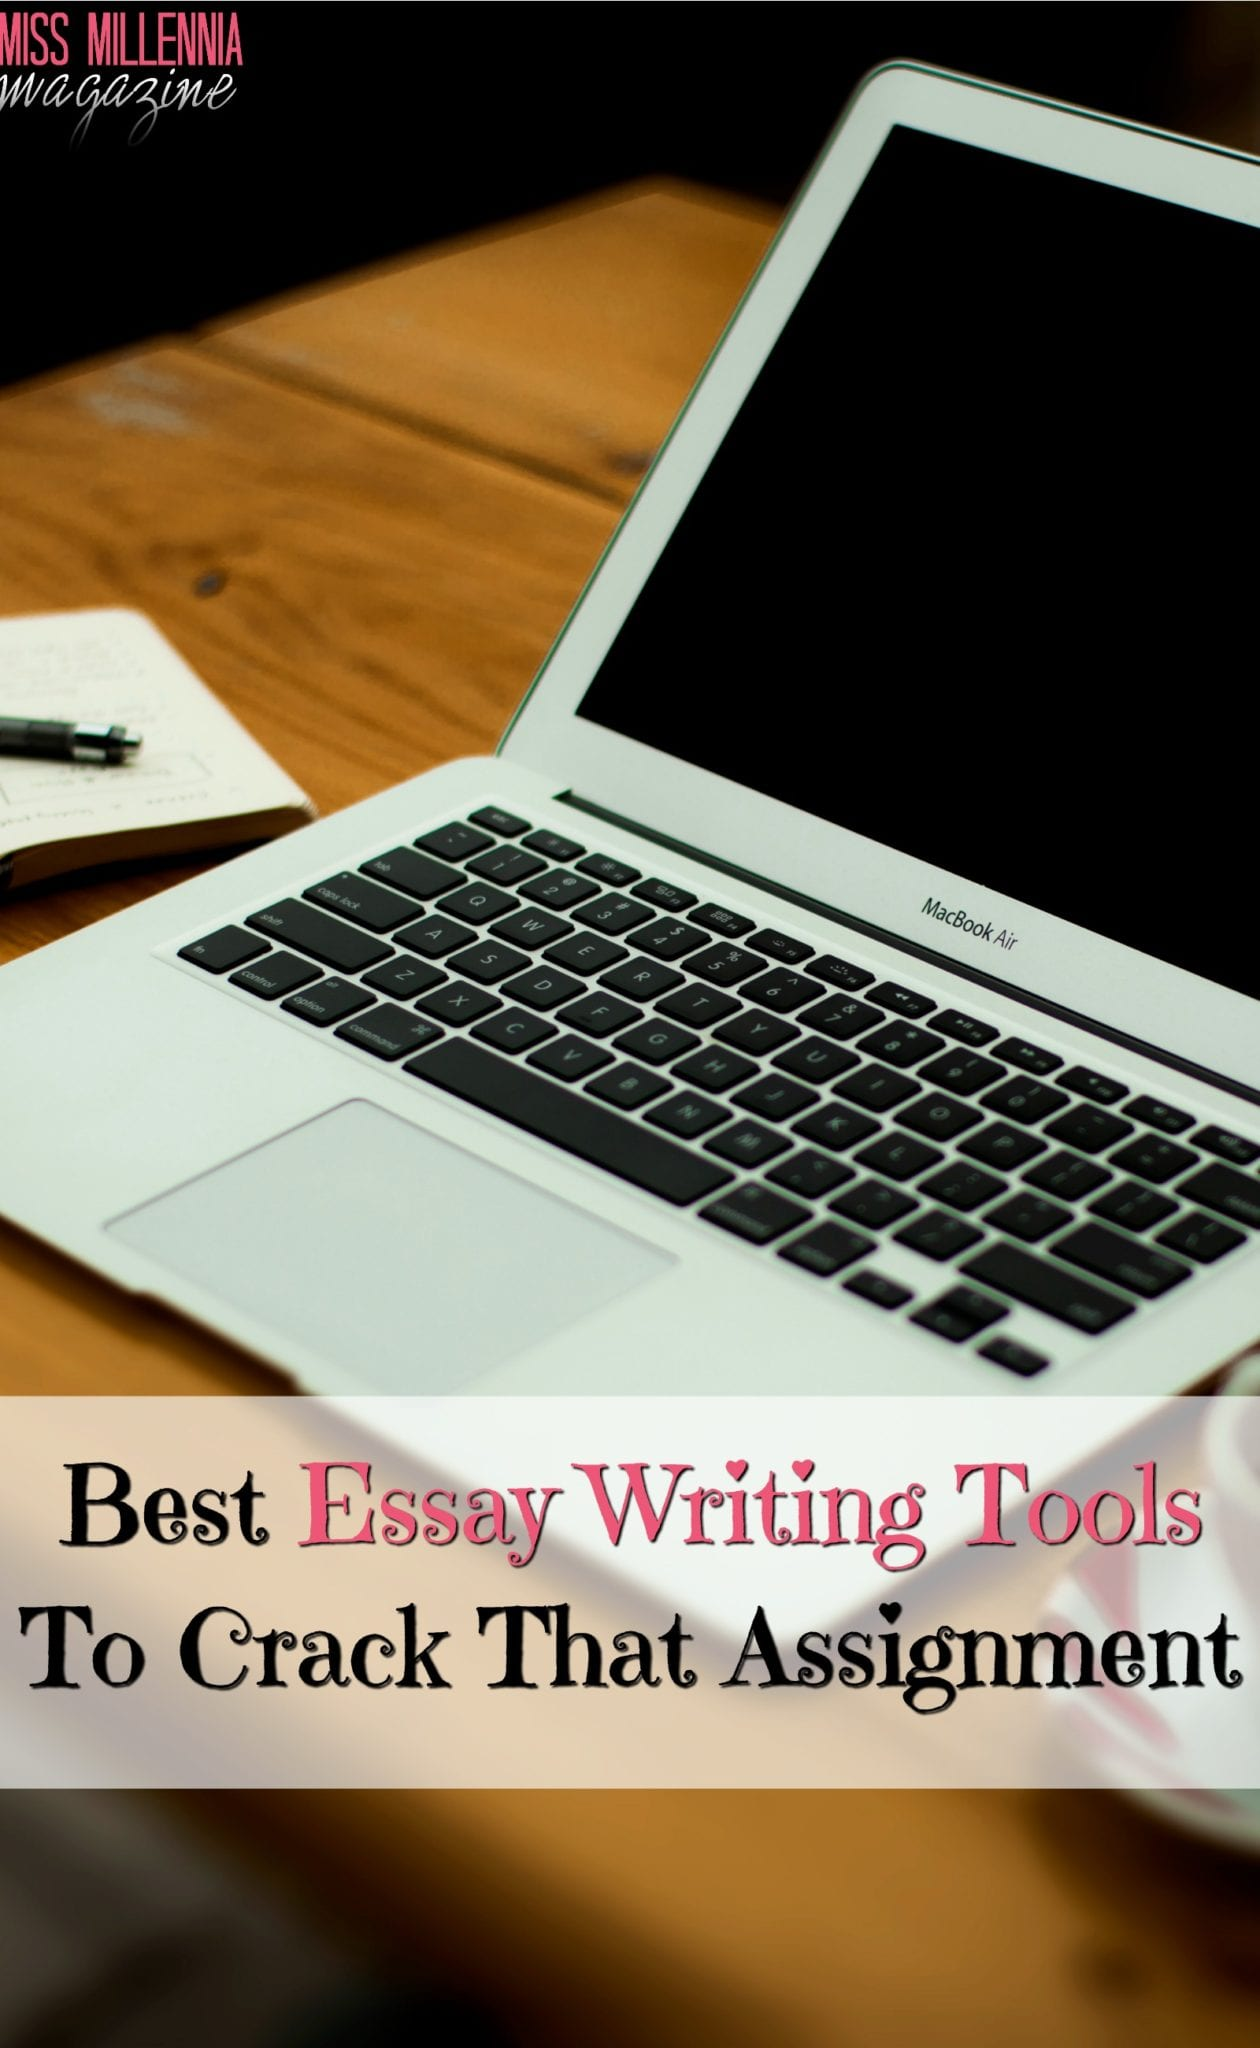 Best Essay Writing Tools To Crack That Assignment